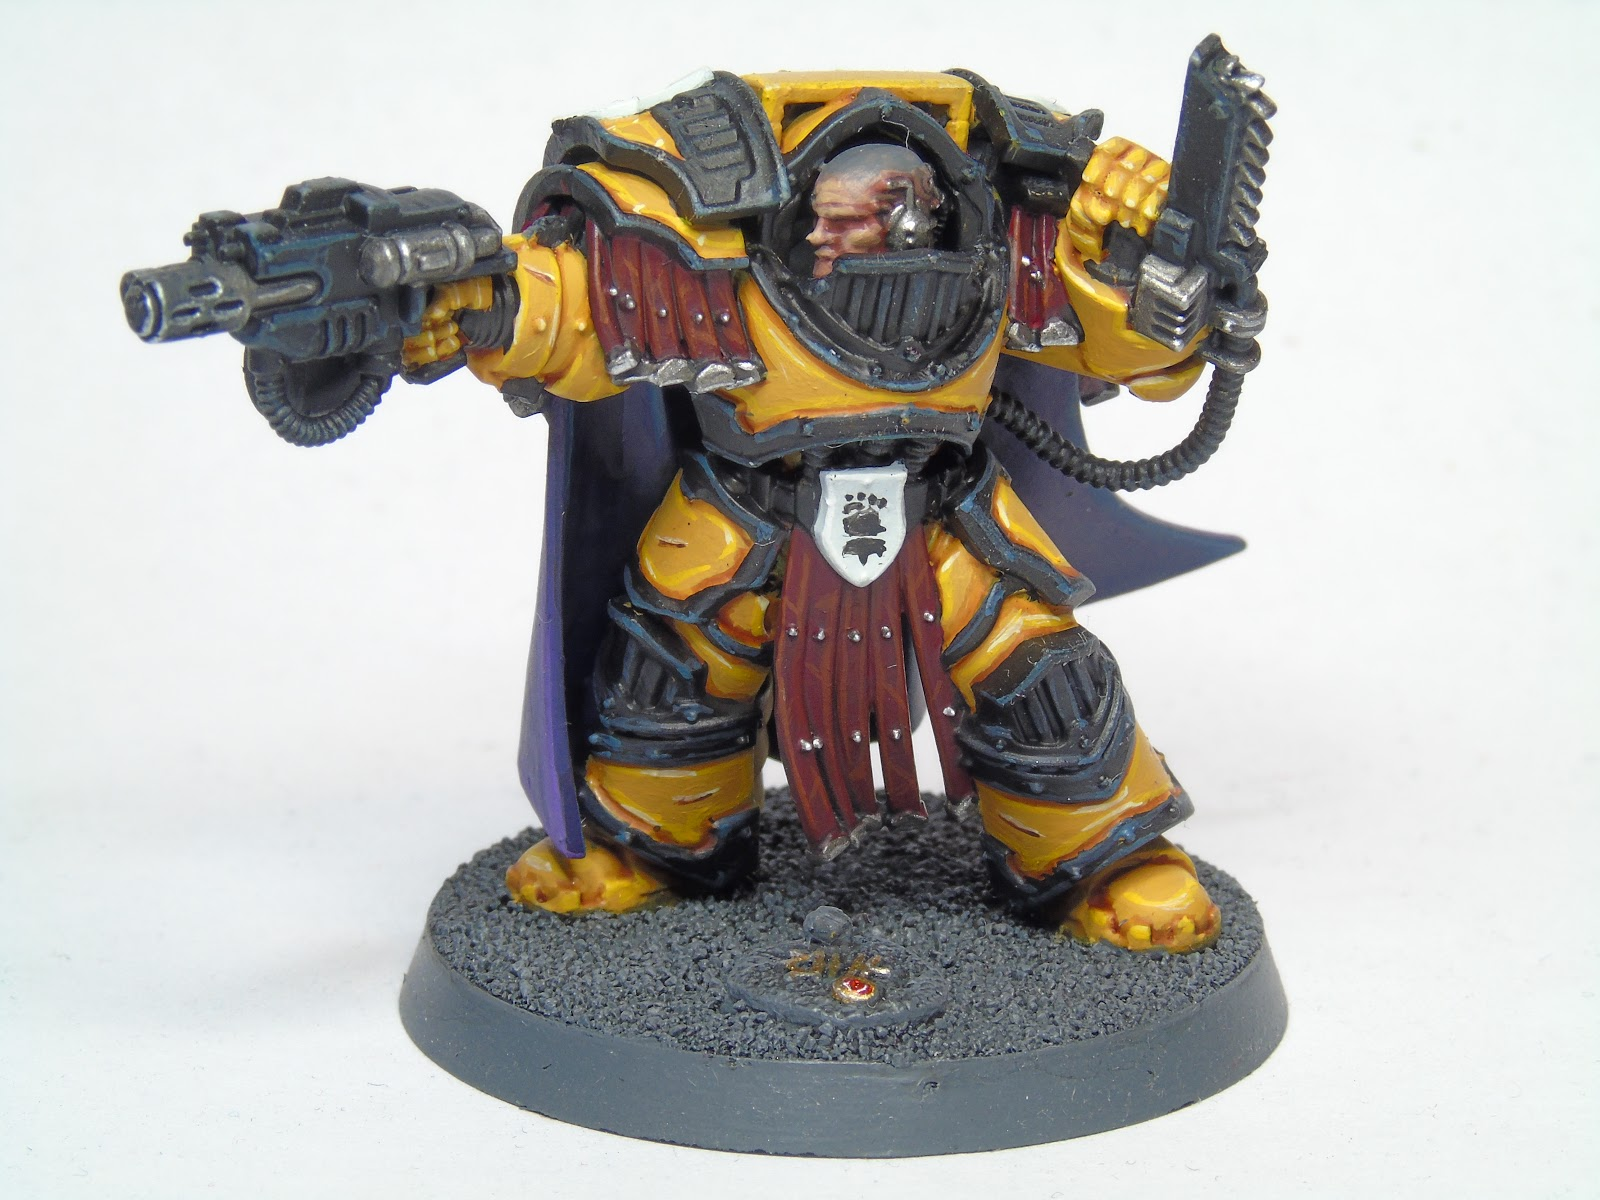 Sign Of The Aquila: For Dorn! For The Emperor! 2: Imperial